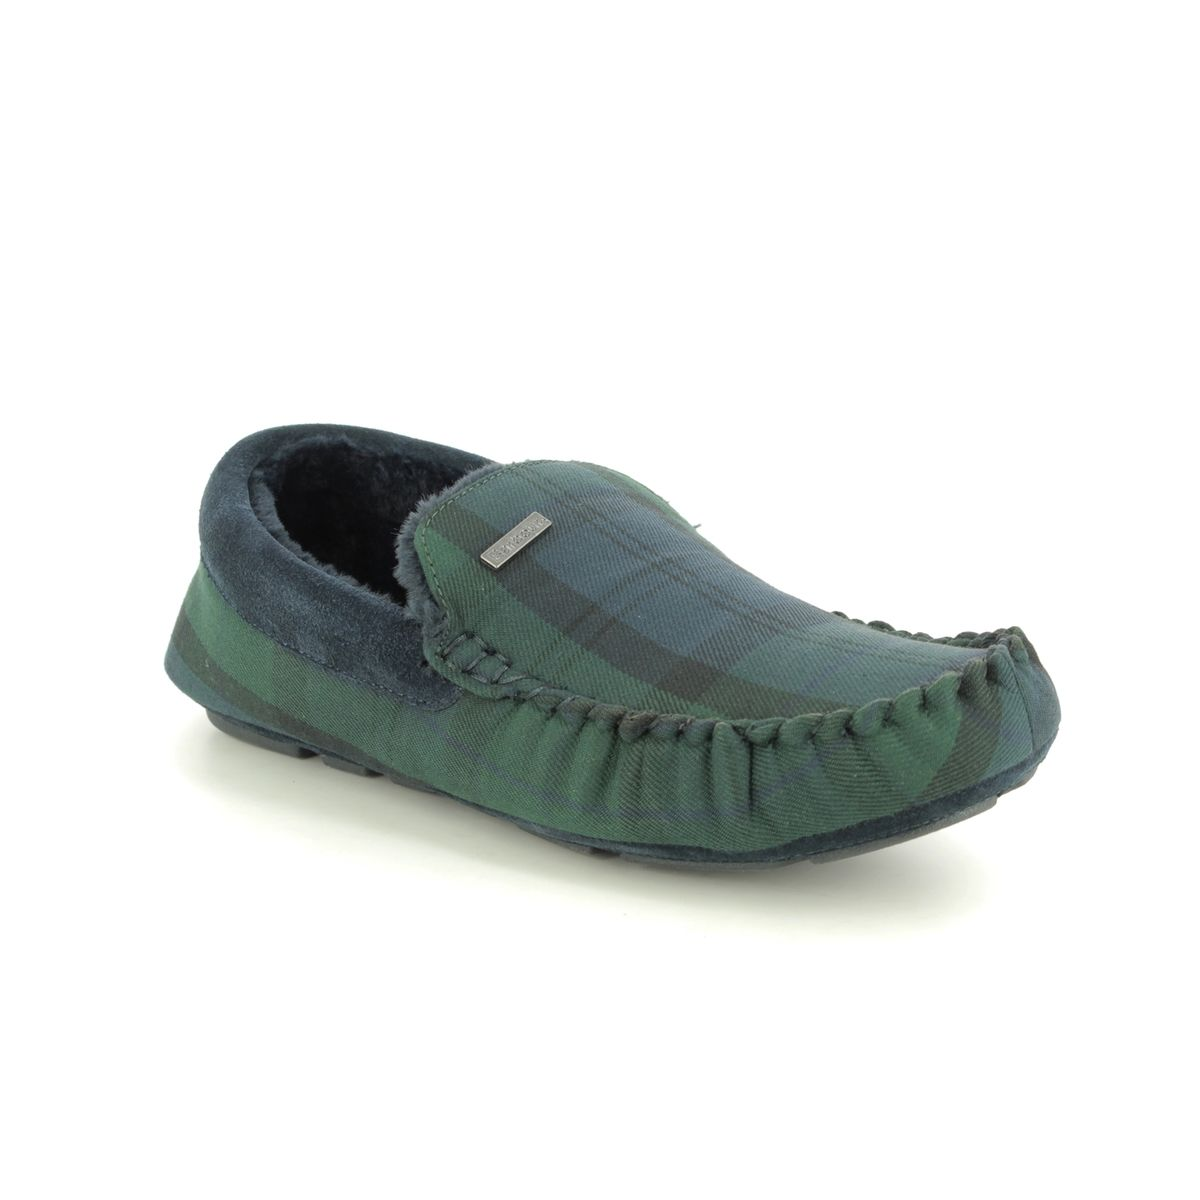 Barbour Monty MSL0001-NY91 Navy slippers